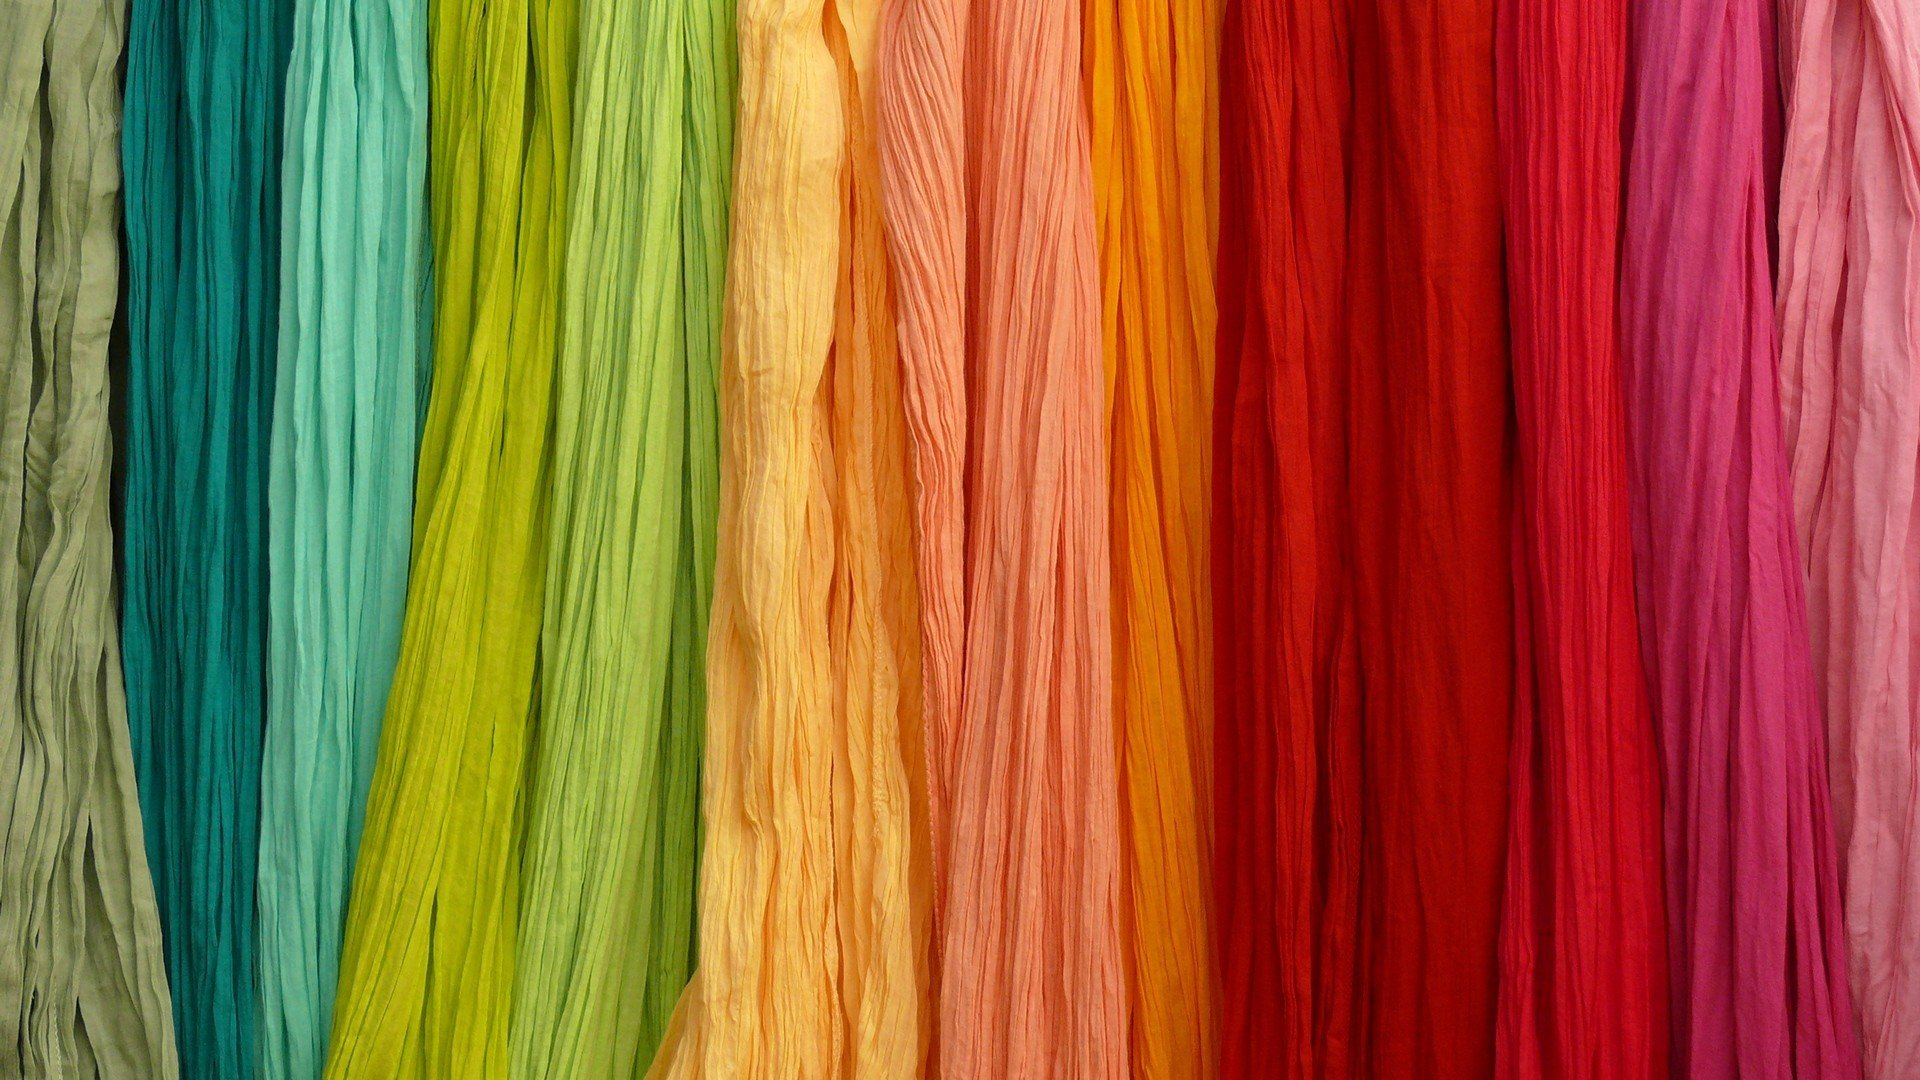 colorful, Fabric HD Wallpapers / Desktop and Mobile Images ...